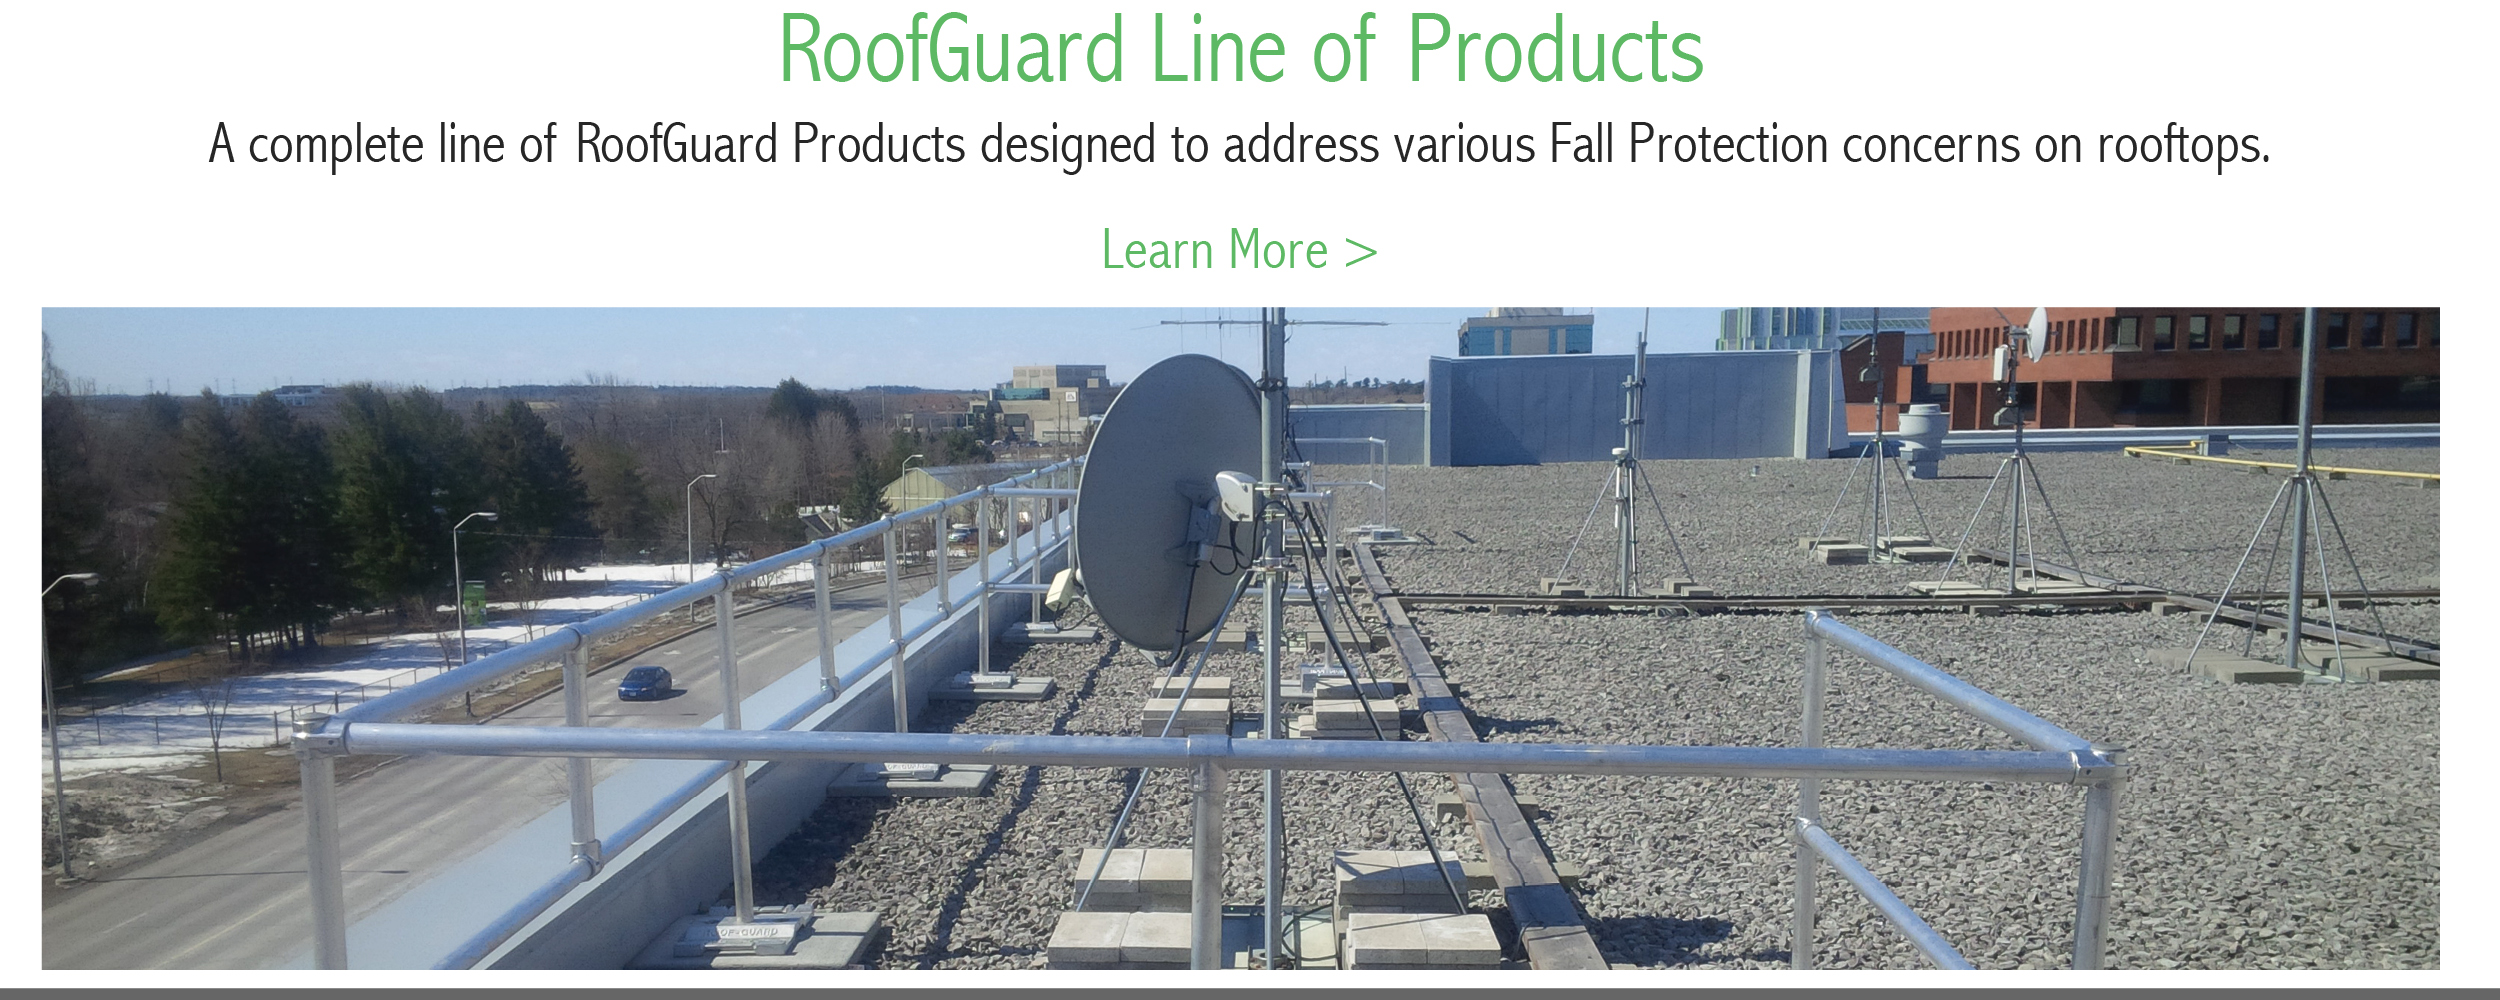 RoofGuard Line of Products